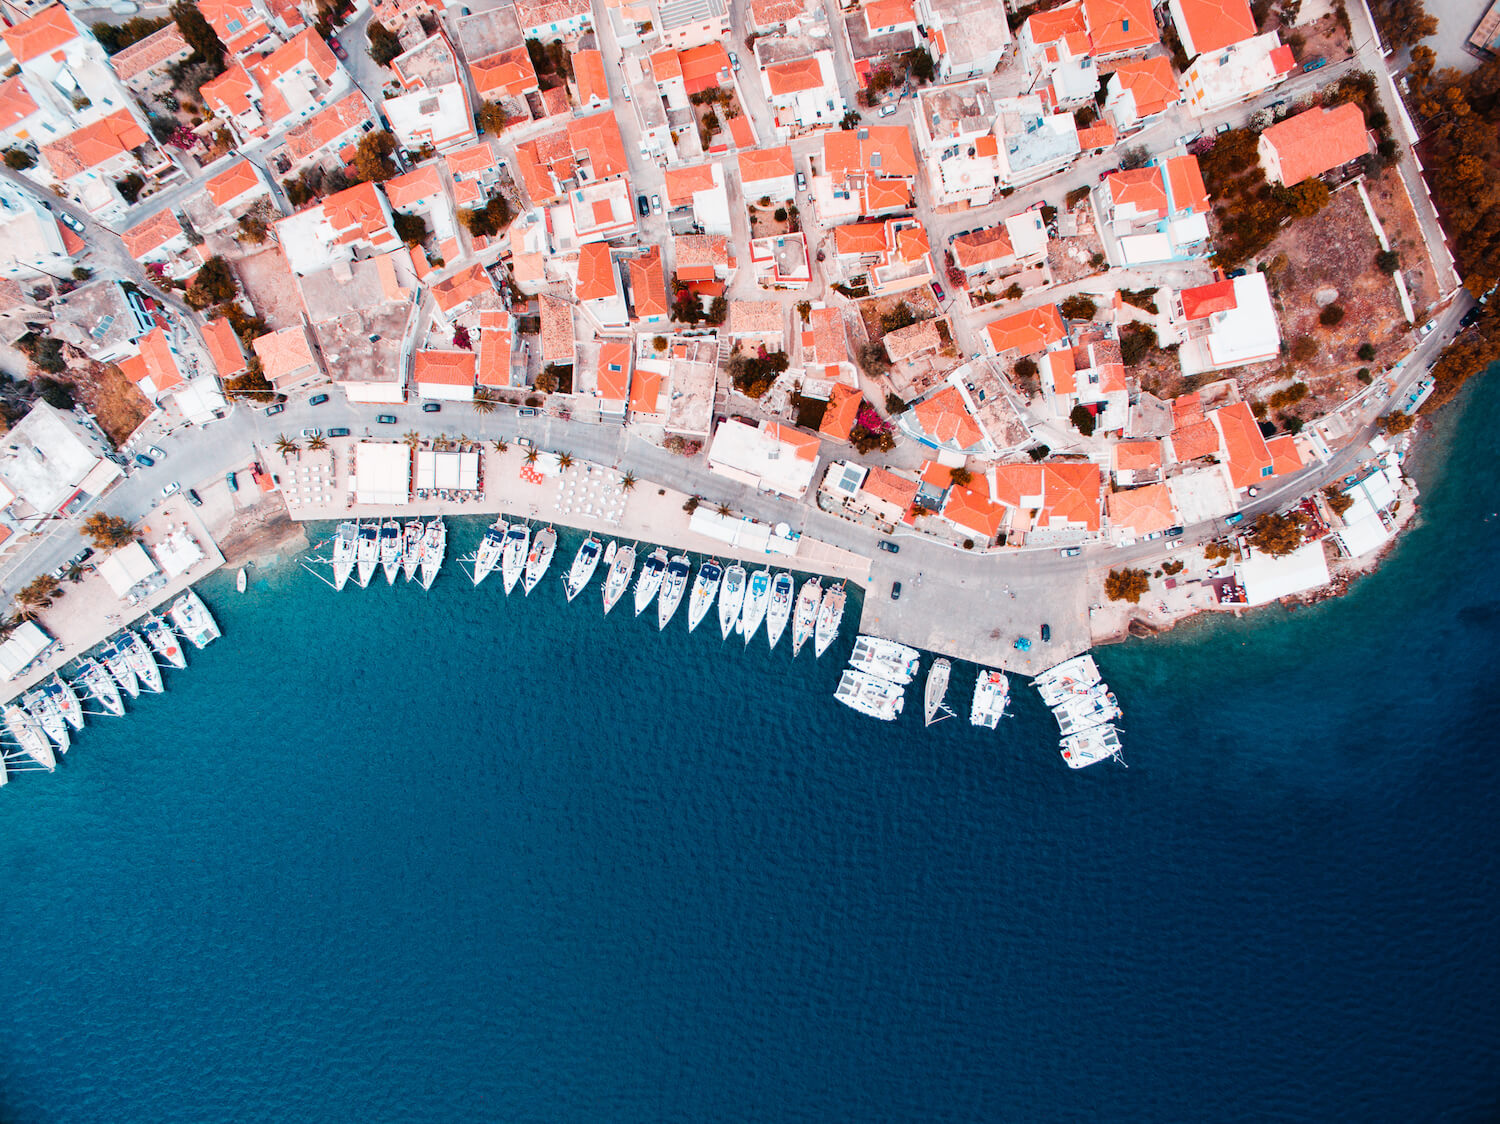 Birds eye view on the city marina with yachts